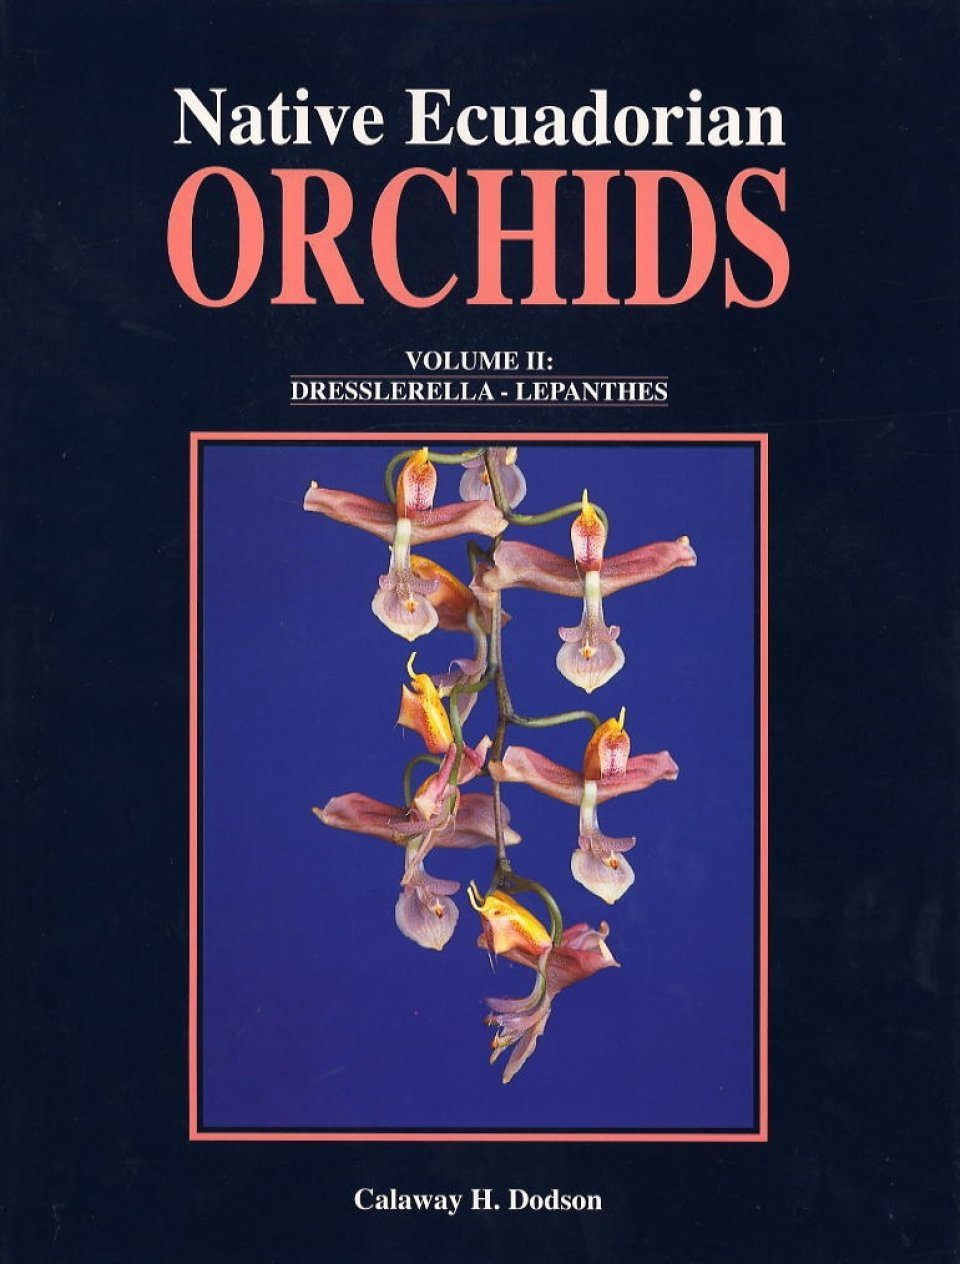 Native Ecuadorian Orchids, Volume 2: Dresslerella - Lepanthes